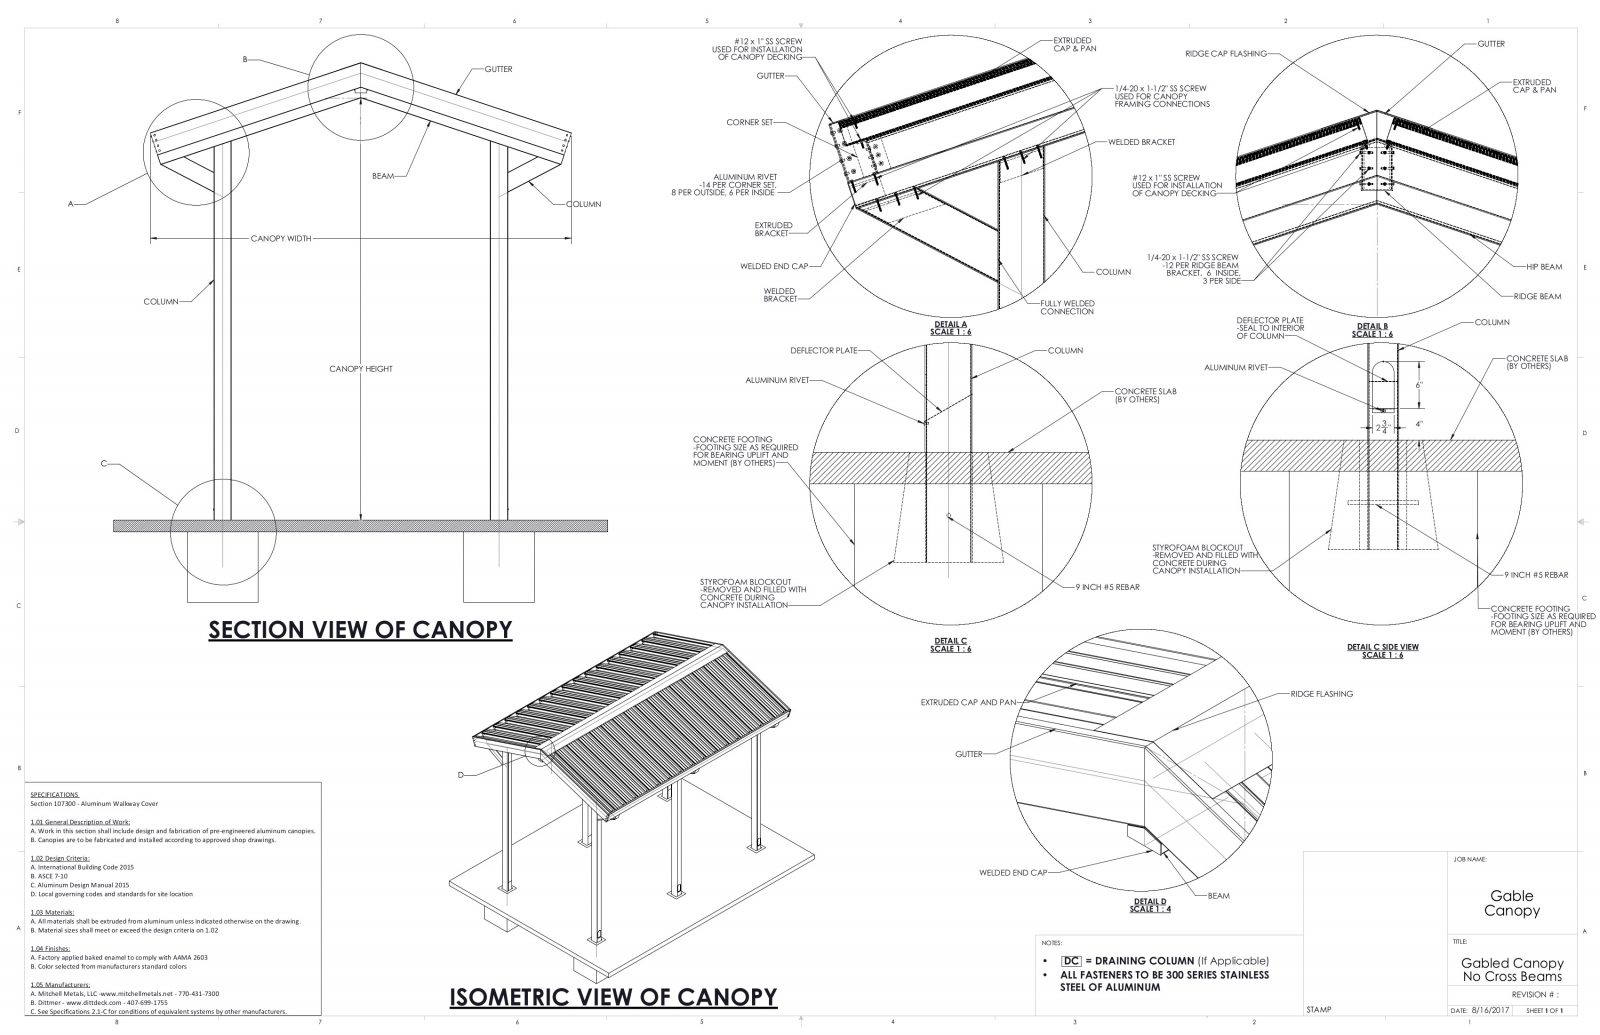 Gabled canopy without crossbeams-drawings and specs by Mitchell Metals